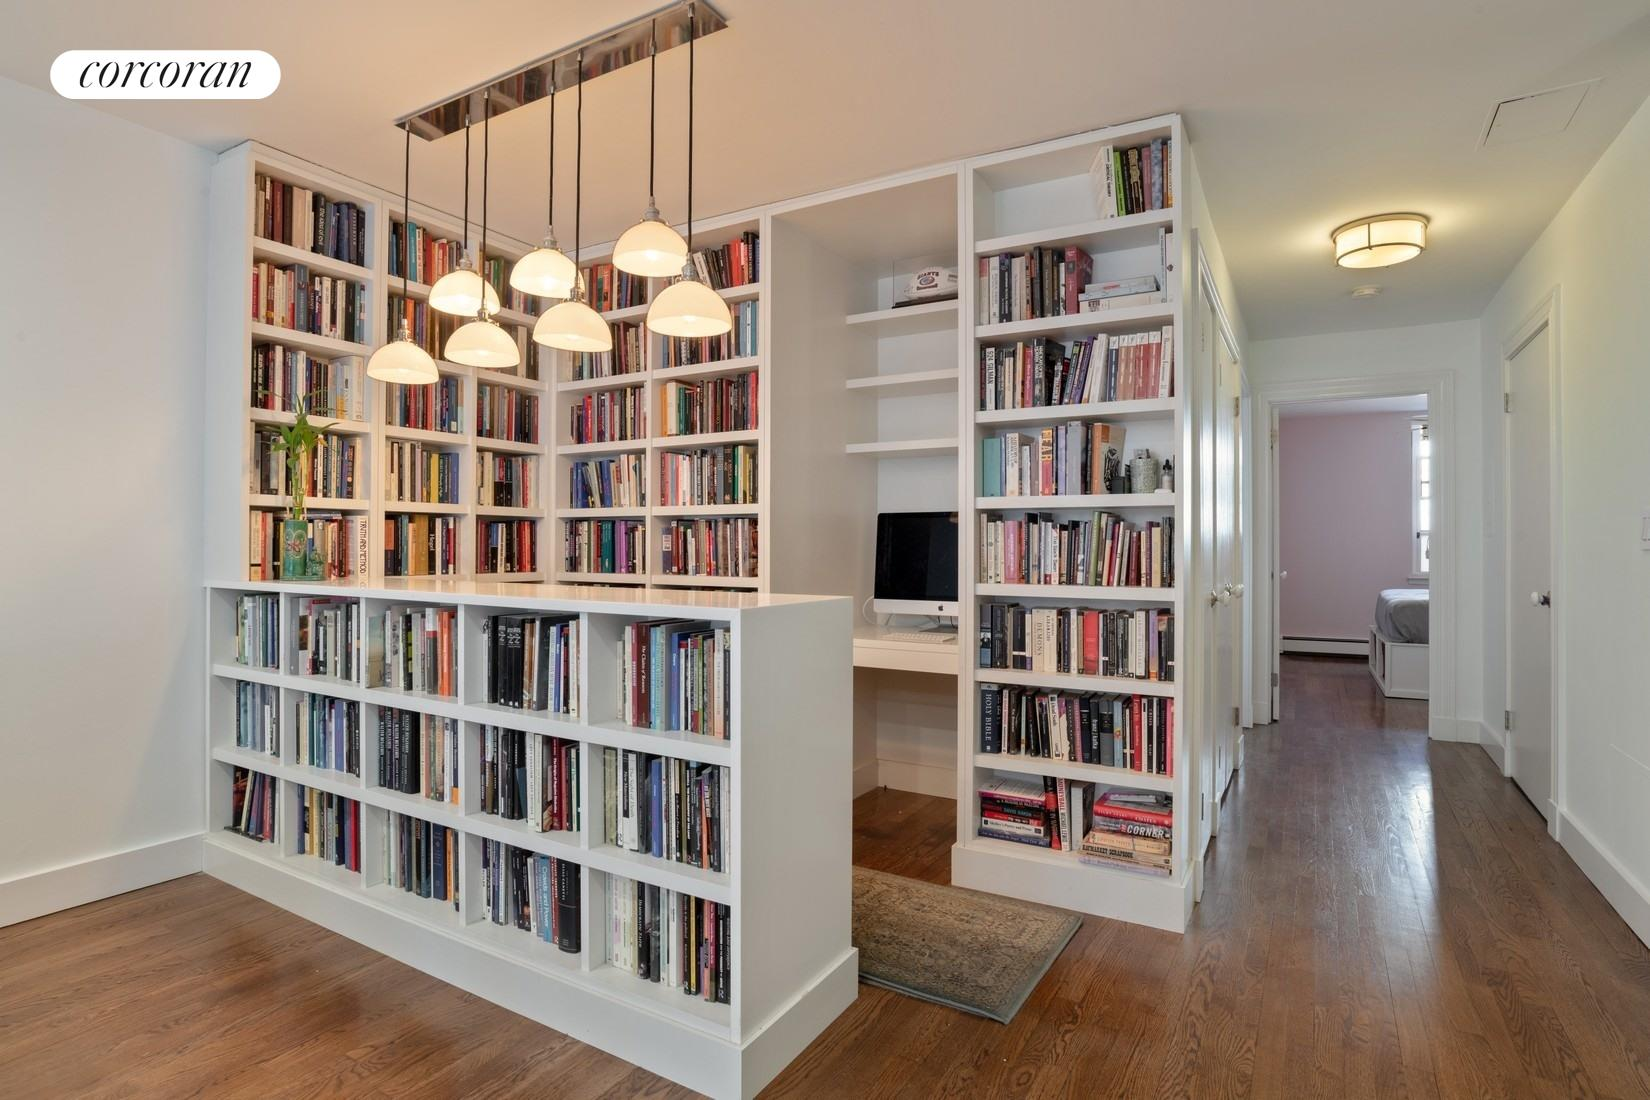 118 Union Street, 9A, Office/Library or Dining nook